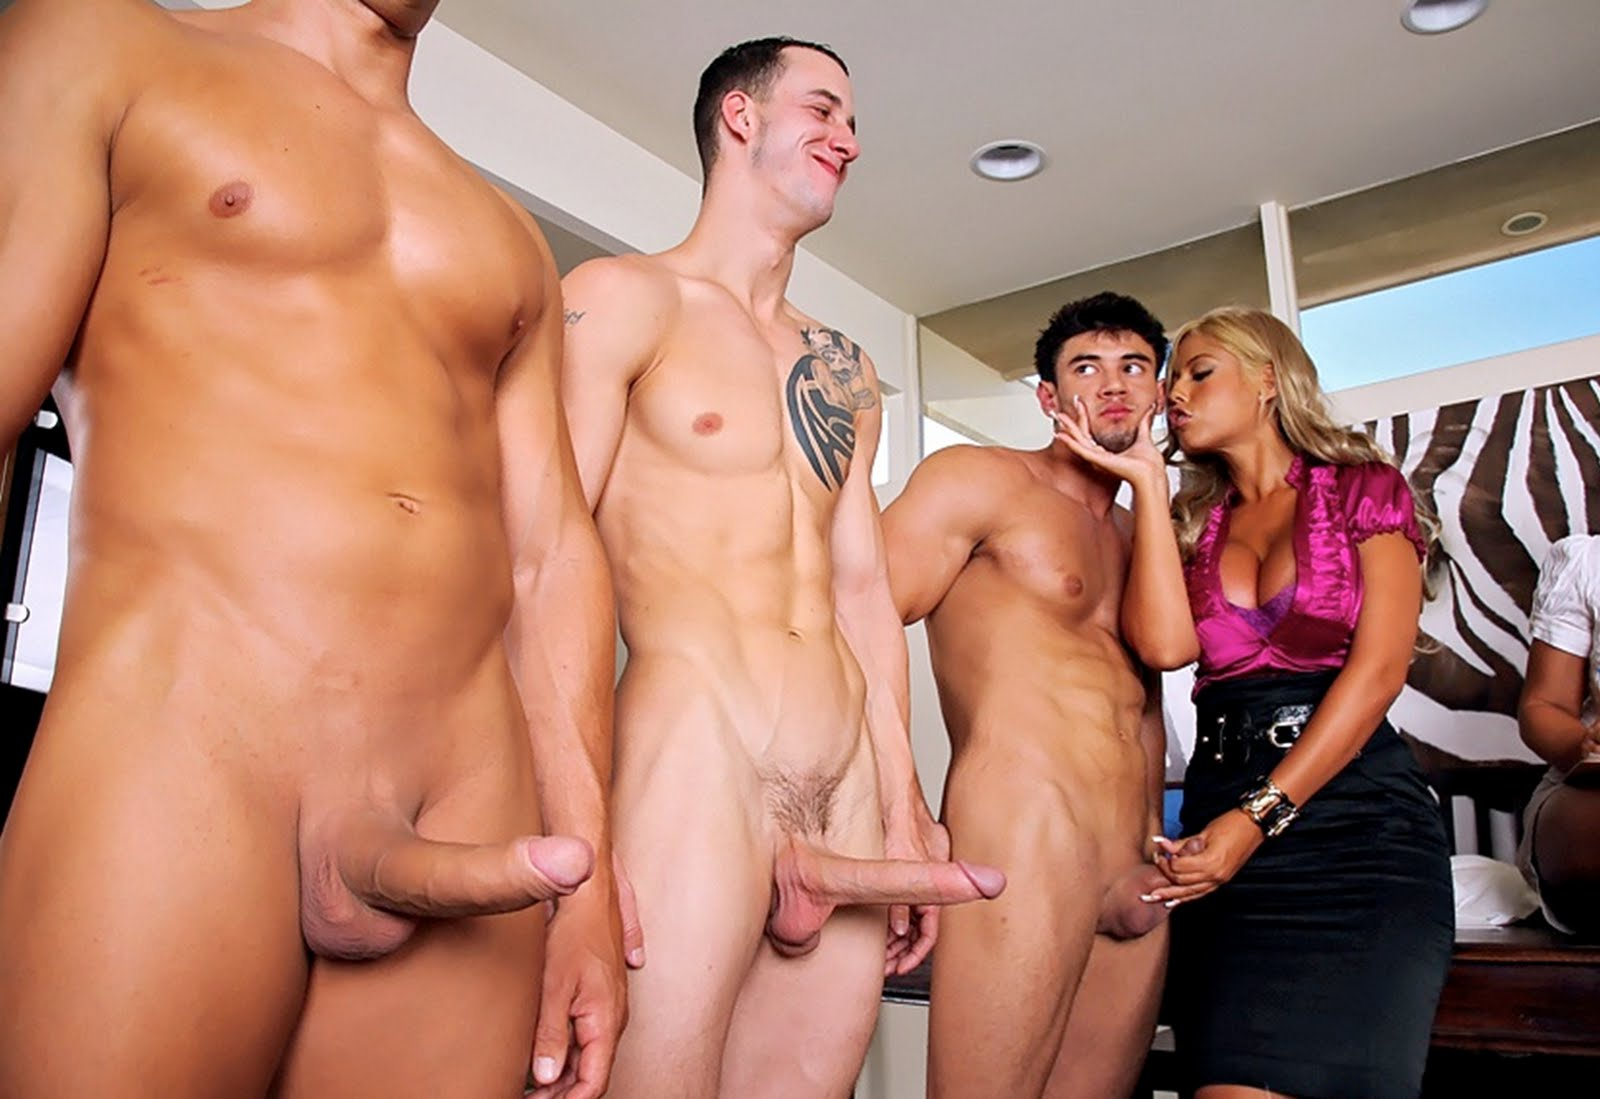 Free naked men and women videos — photo 5